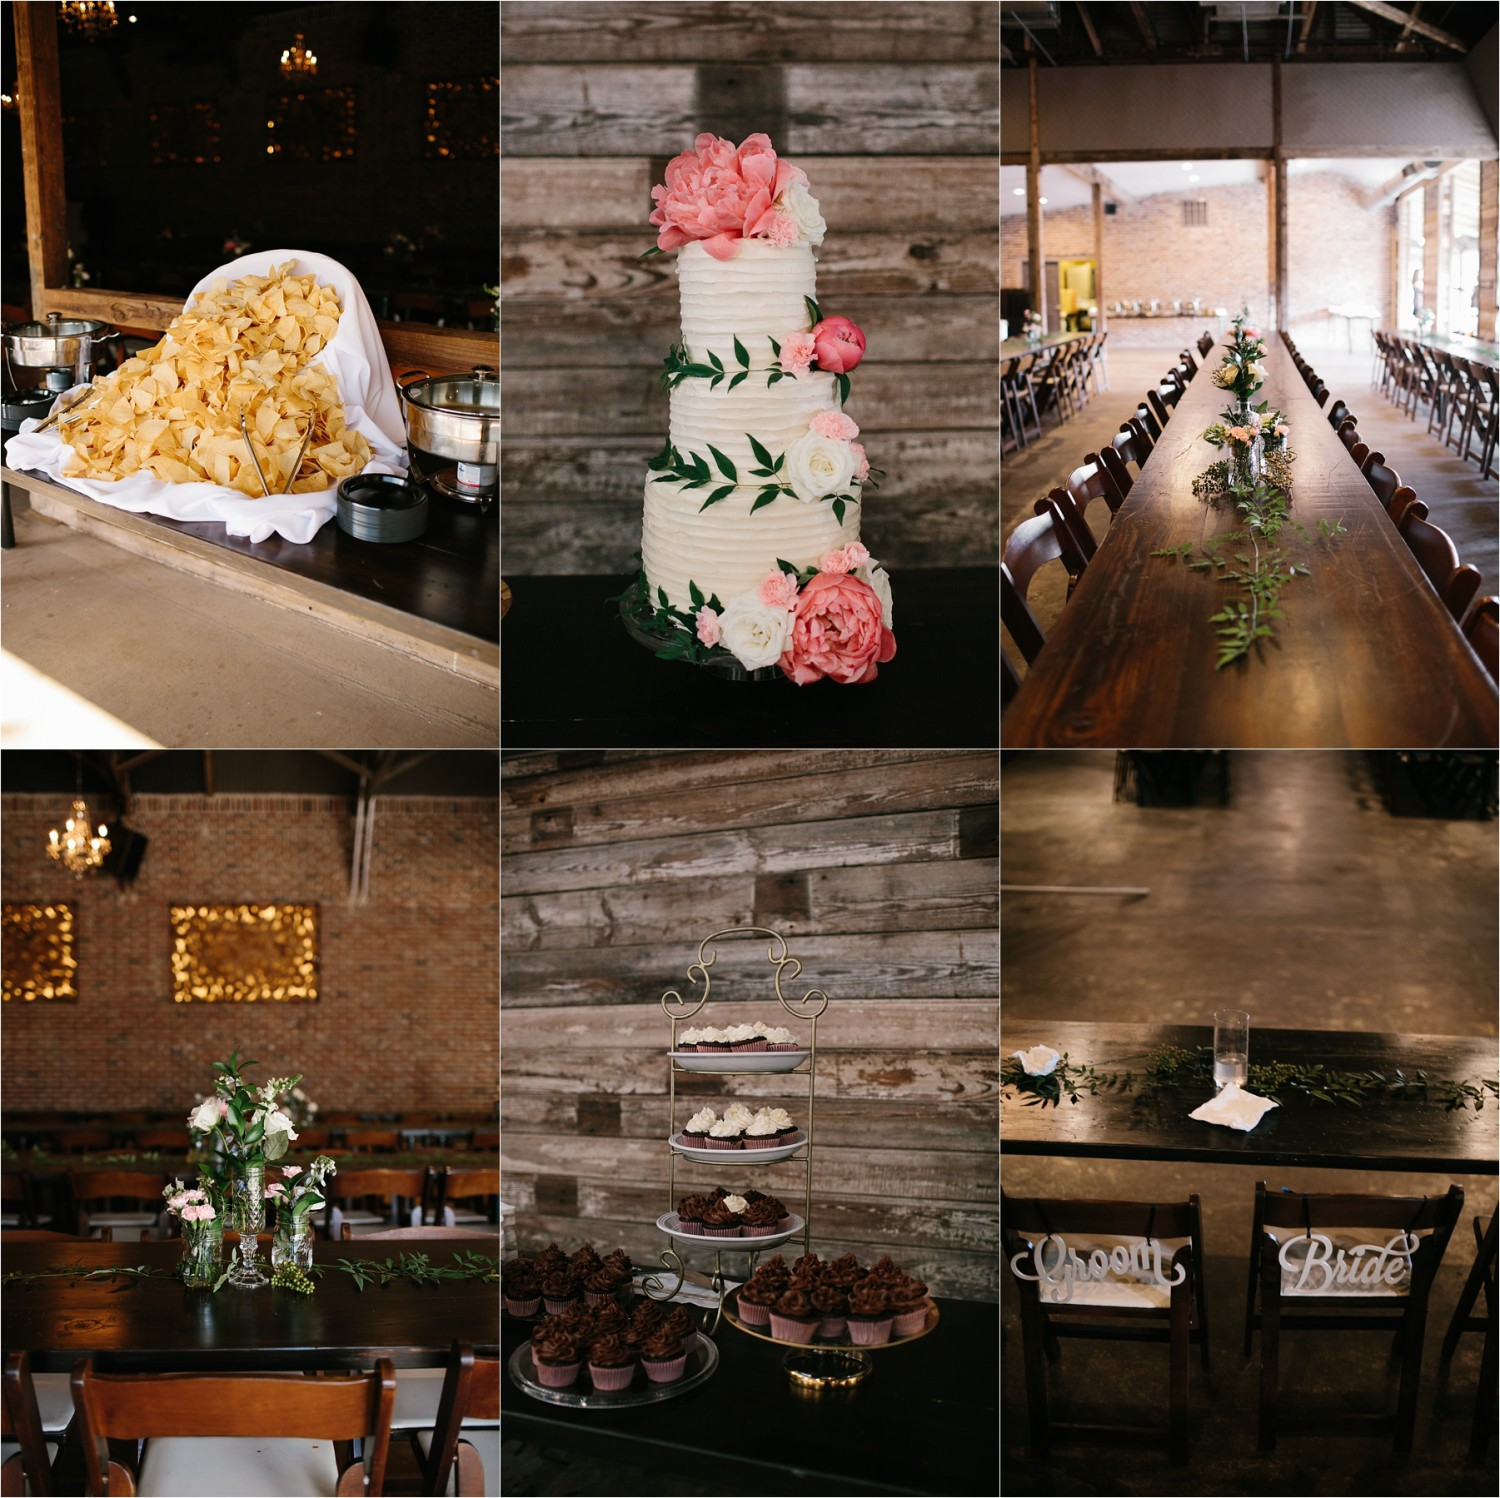 a-riffle-paper-co-inspired-color-pallete-wedding-at-mopac-event-center-in-fort-worth-tx-by-north-texas-wedding-photographer-rachel-meagan-photography-_-041